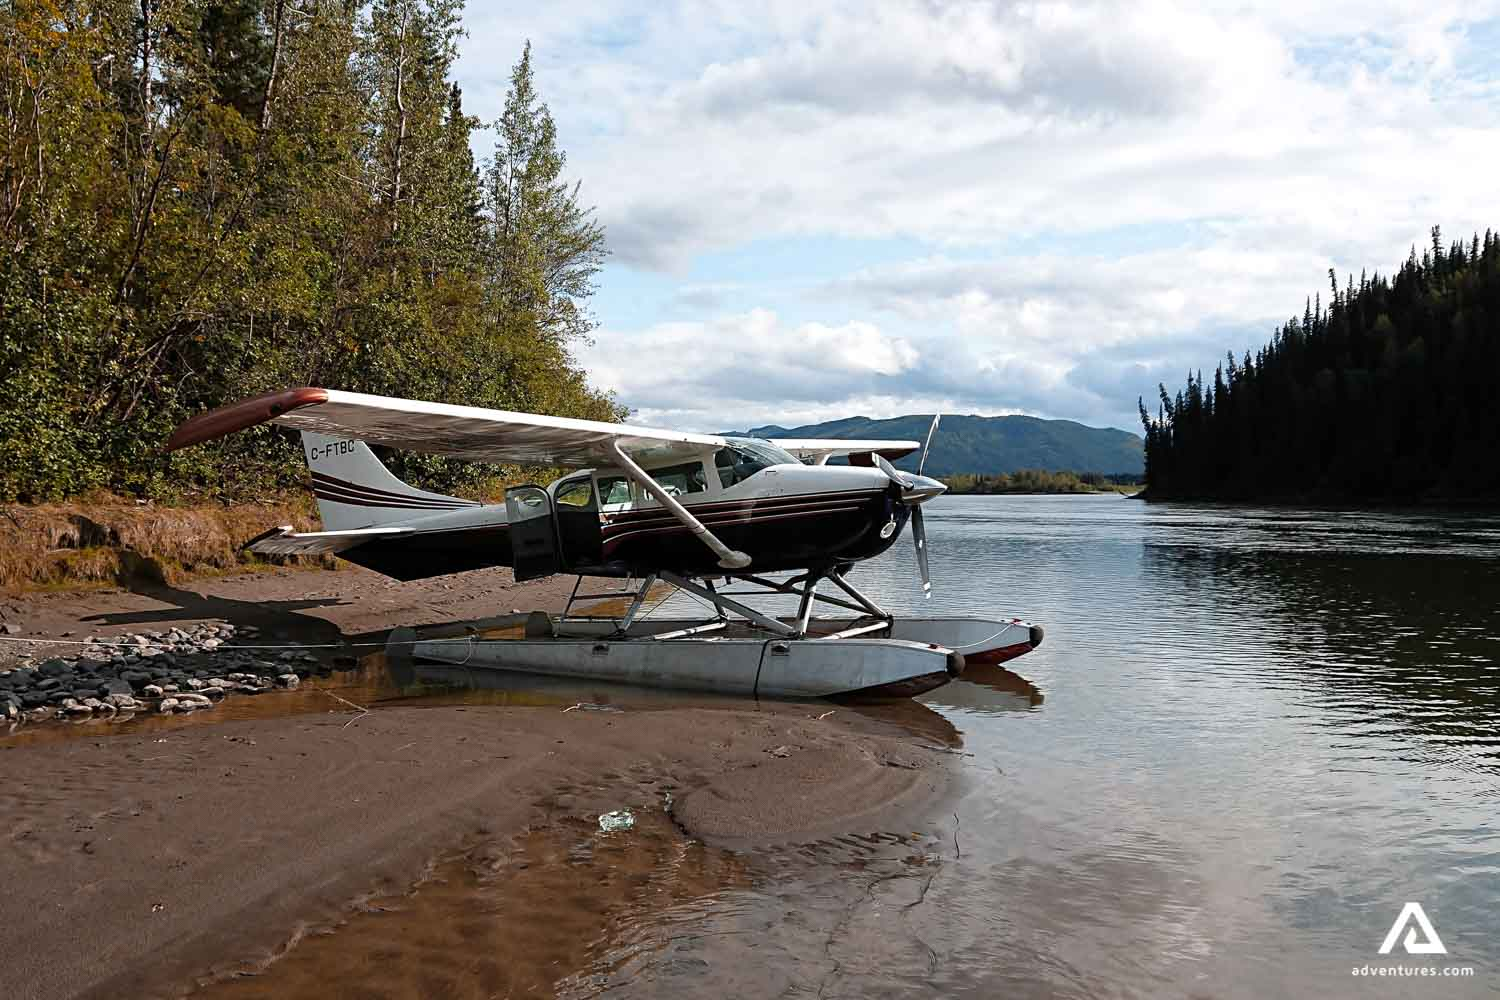 Bushplane landed on the river